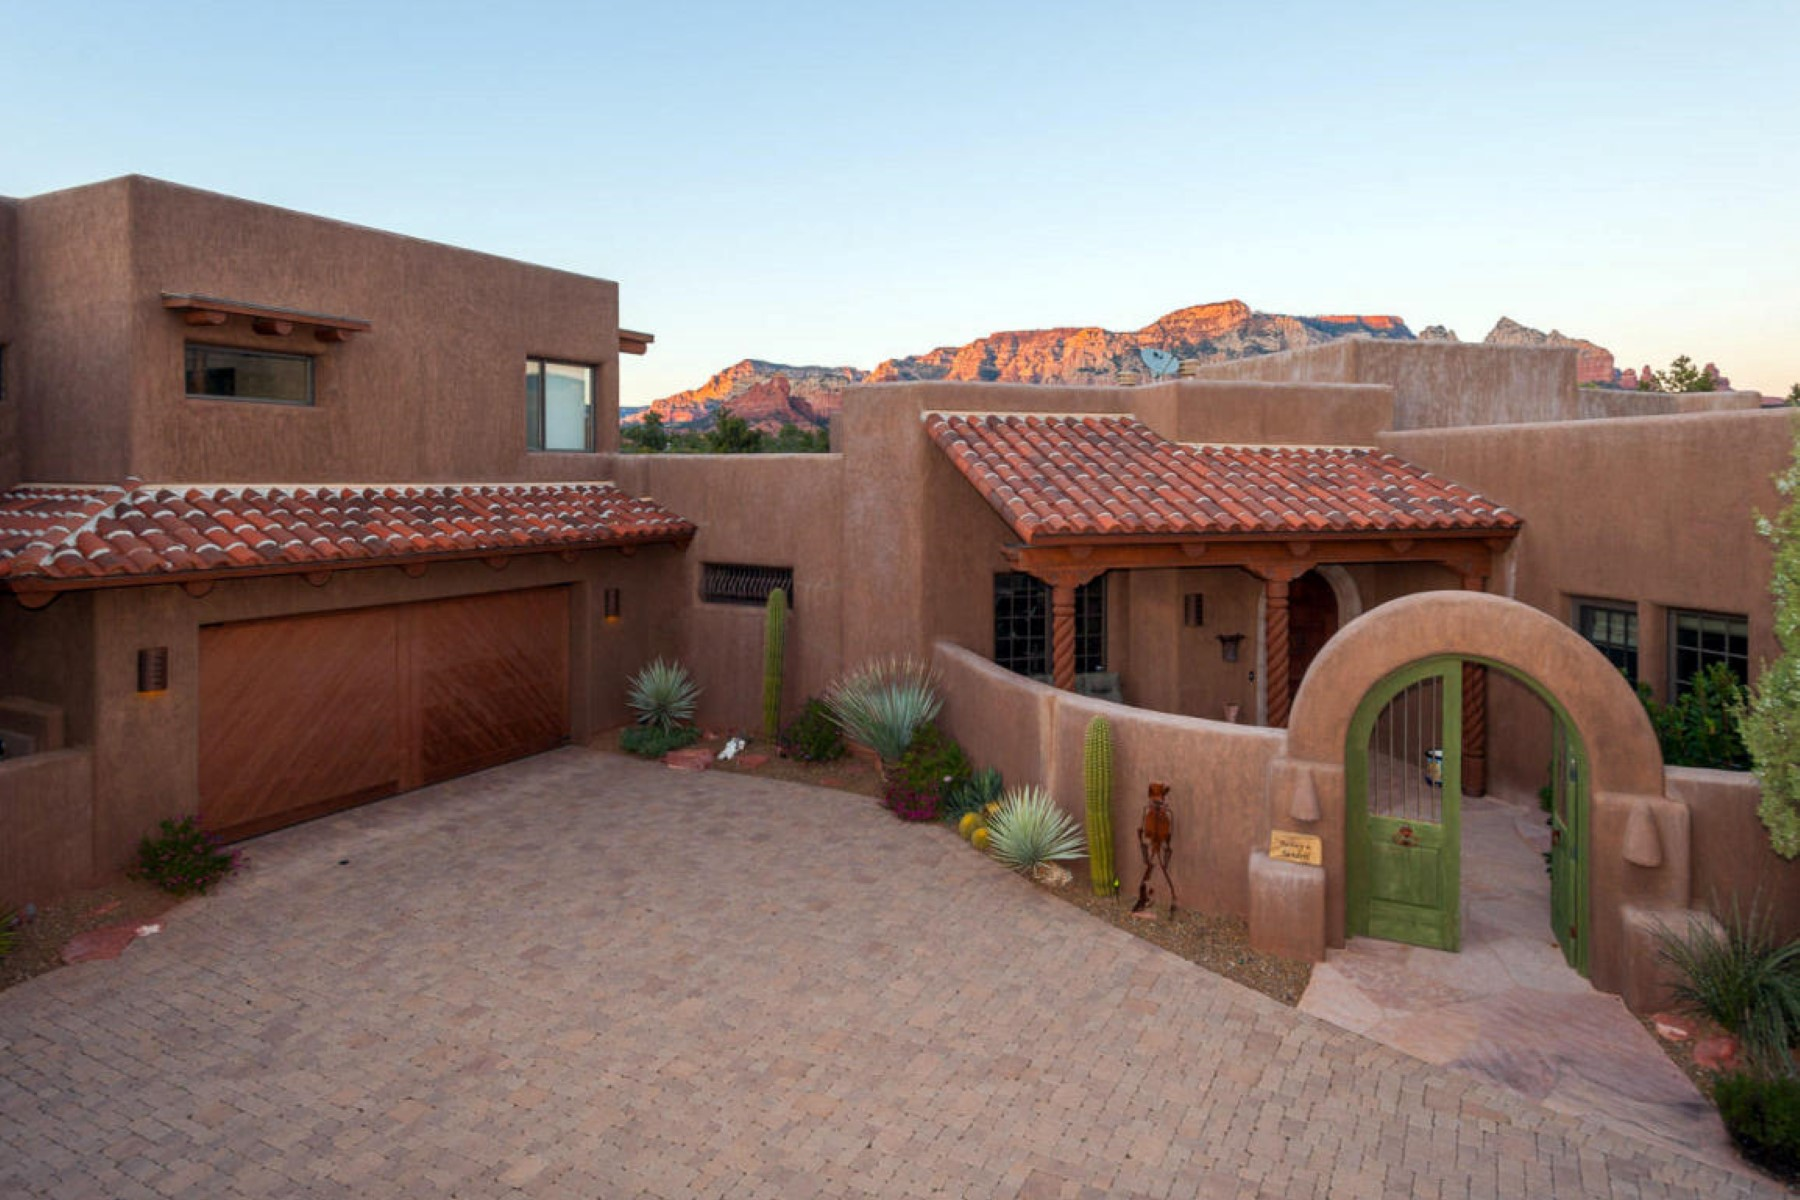 Single Family Home for Sale at Luxury home in with a dramatic red rock panorama 100 Soldiers Pass Rd Sedona, Arizona, 86336 United States